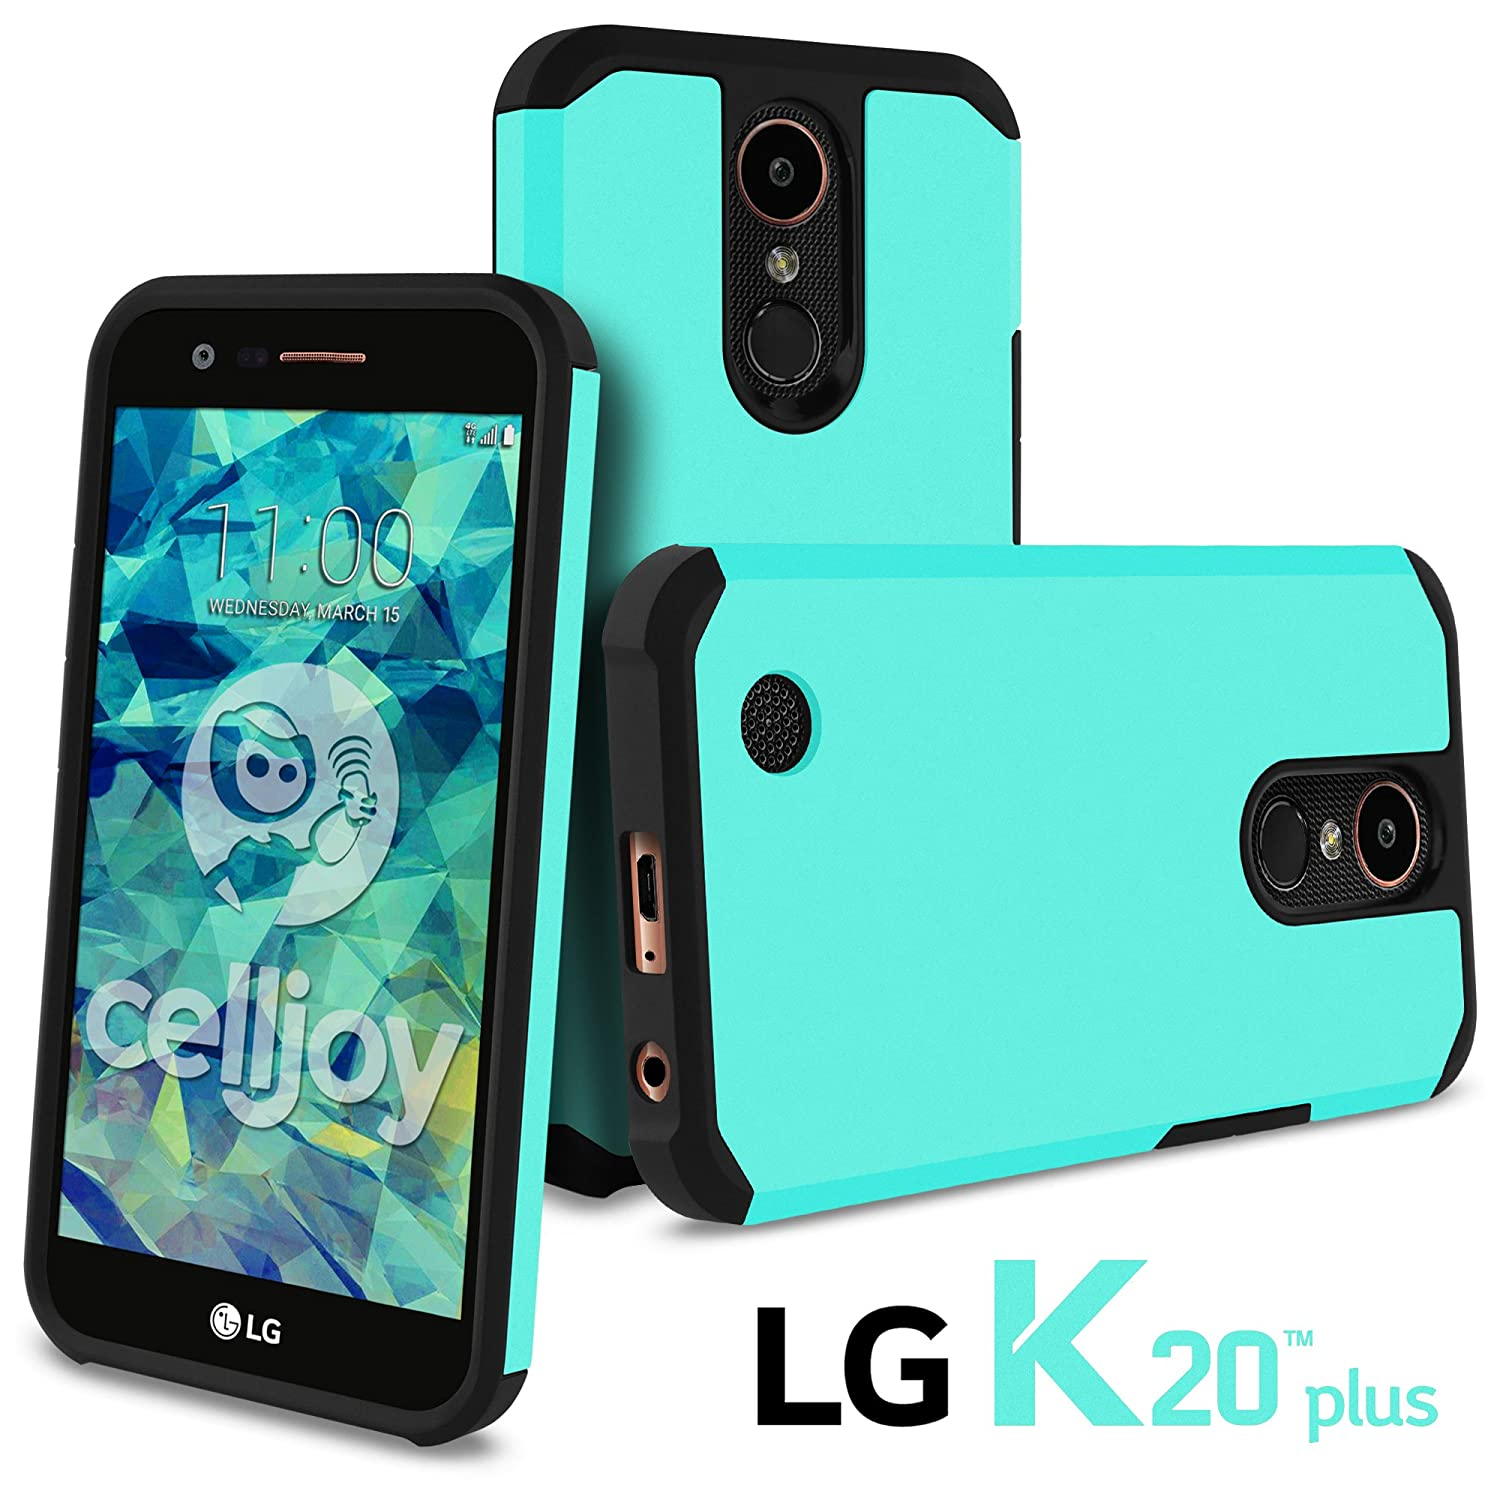 Celljoy Case Compatible with LG K20 Plus, K20 V, Harmony, K10 2017 [Liquid Armor] Slim Fit [[Shockproof]] TPU Skin/Thin Hard Shell Protective Hybrid Cover - Matte (Metallic Teal Blue)